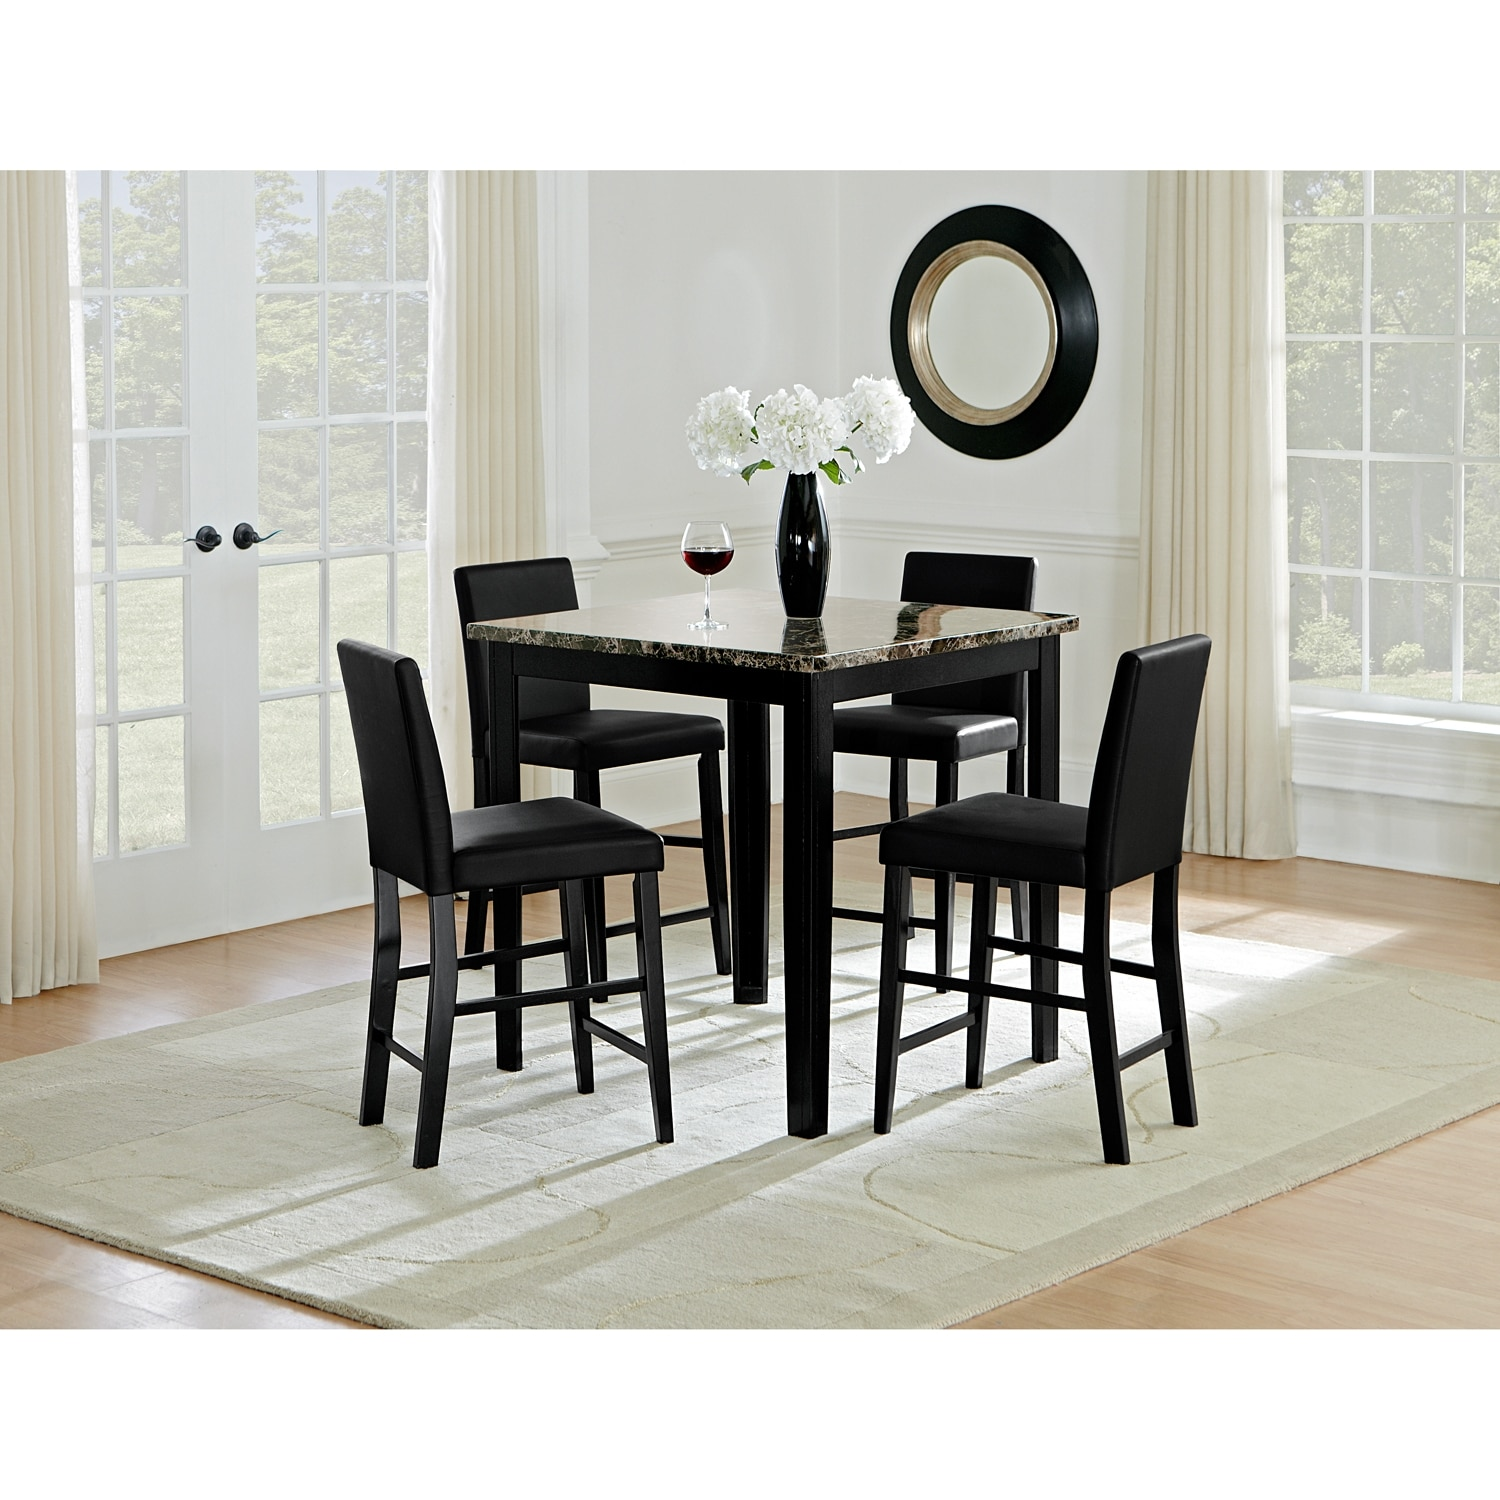 Shadow Counter-Height Dining Table - Black | American Signature ...